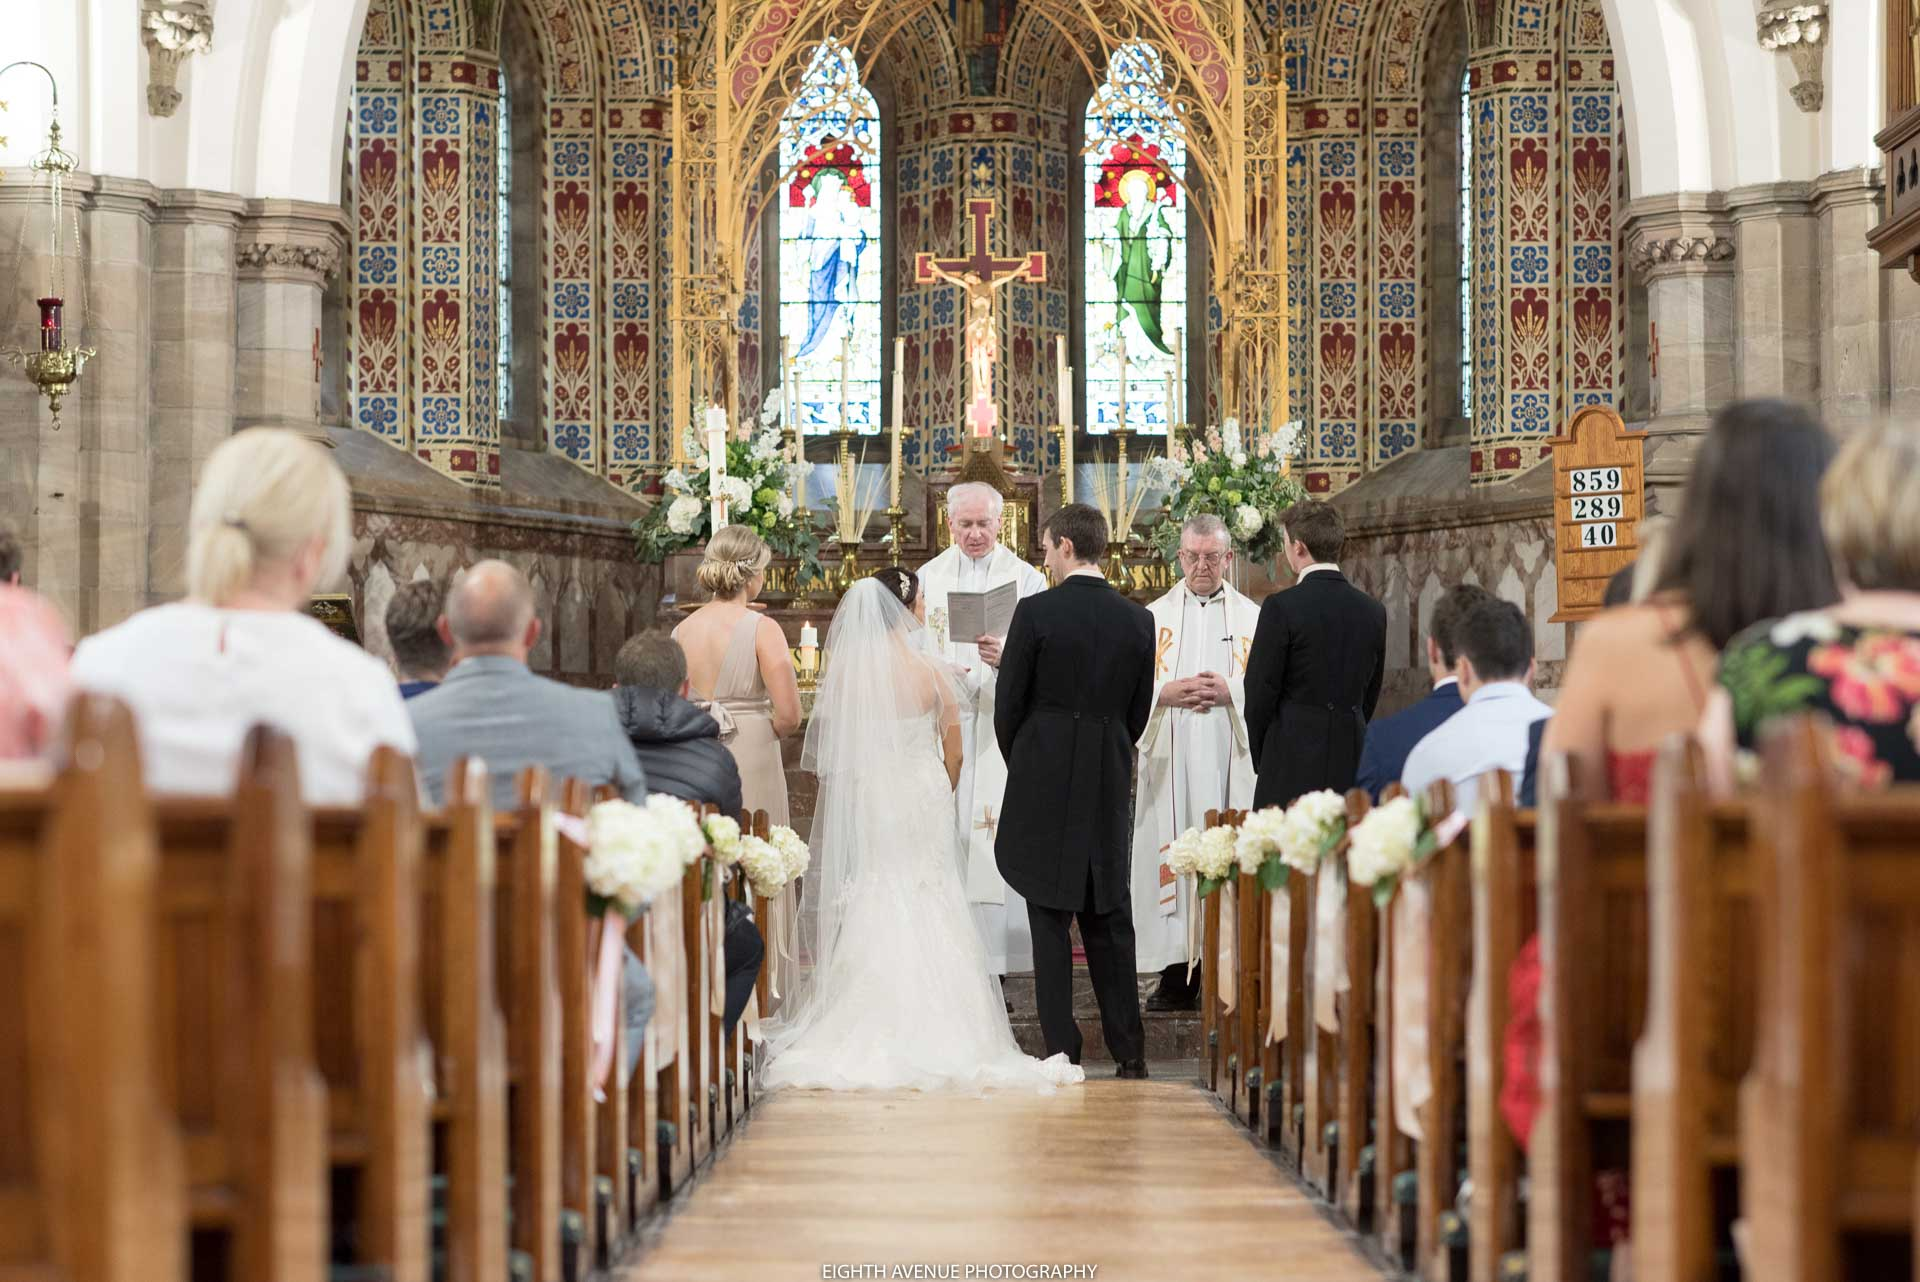 Down the aisle to bride and groom at church wedding